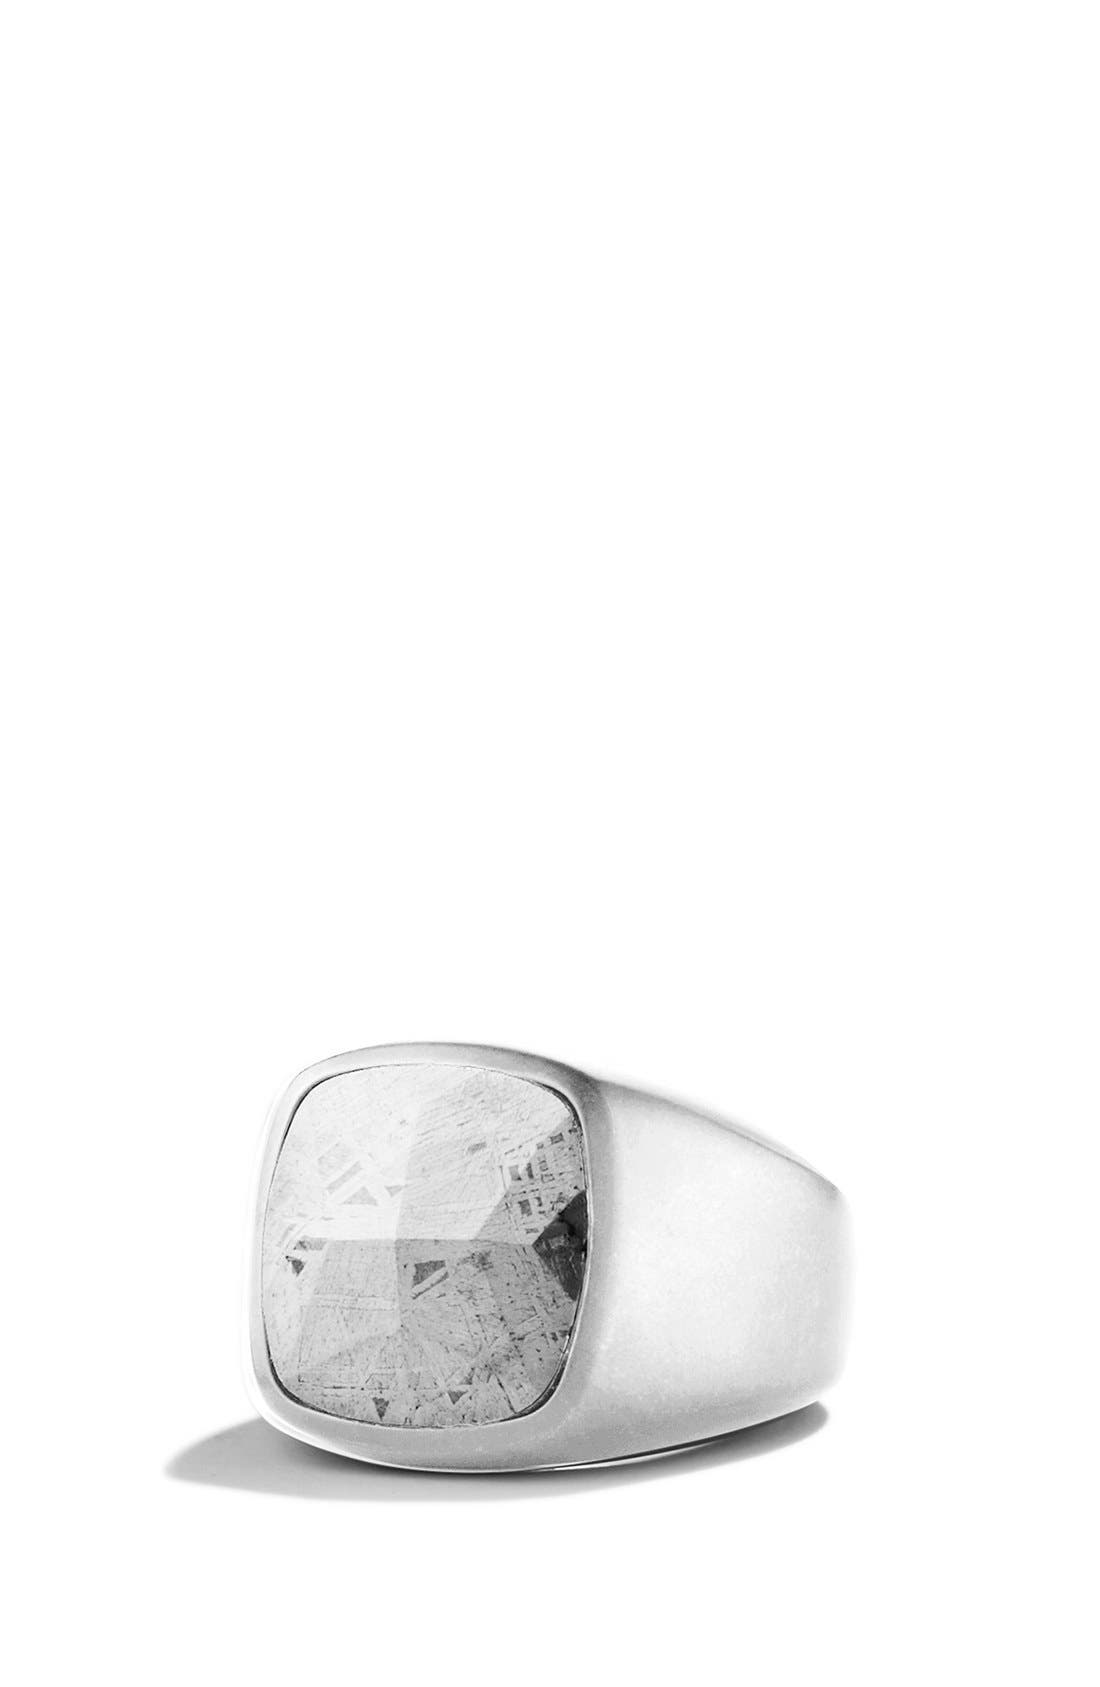 Signet Ring with Meteorite,                             Main thumbnail 1, color,                             030